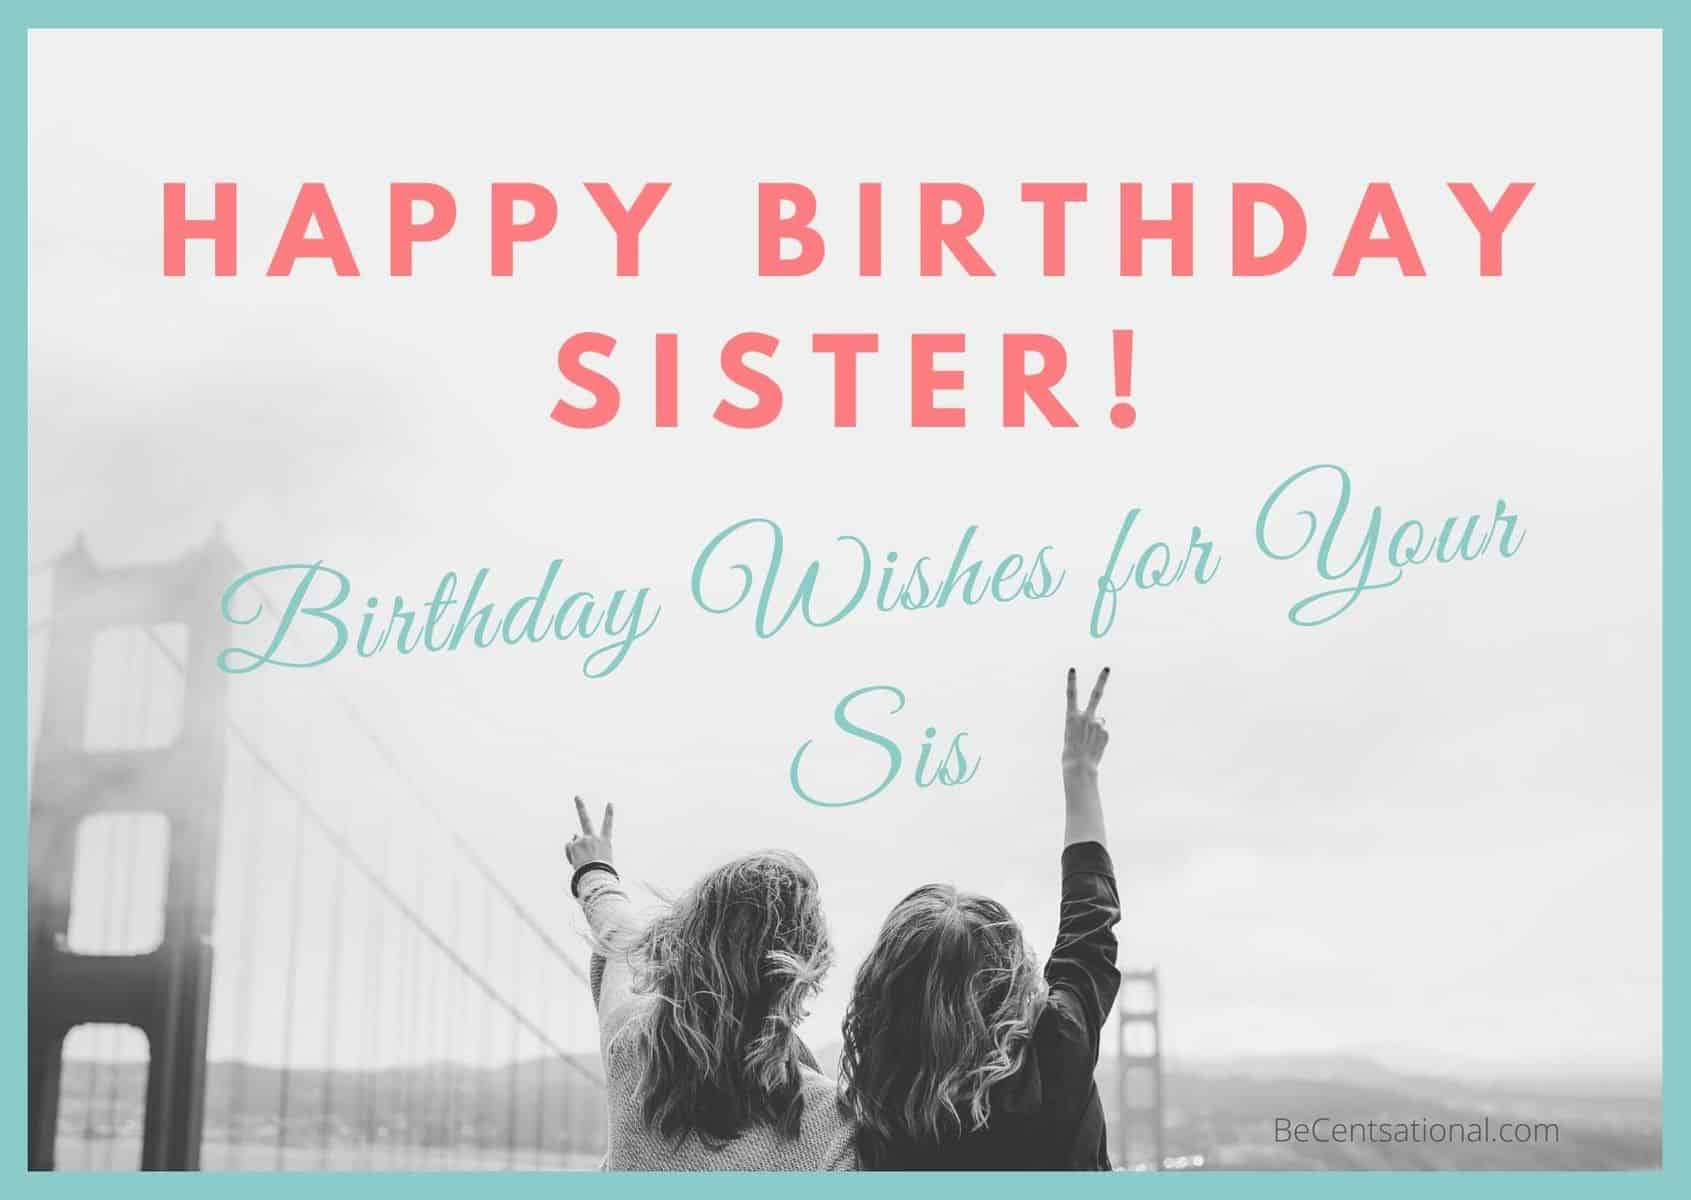 Happy Birthday Sister 50 Birthday Wishes For Sister Be Centsational